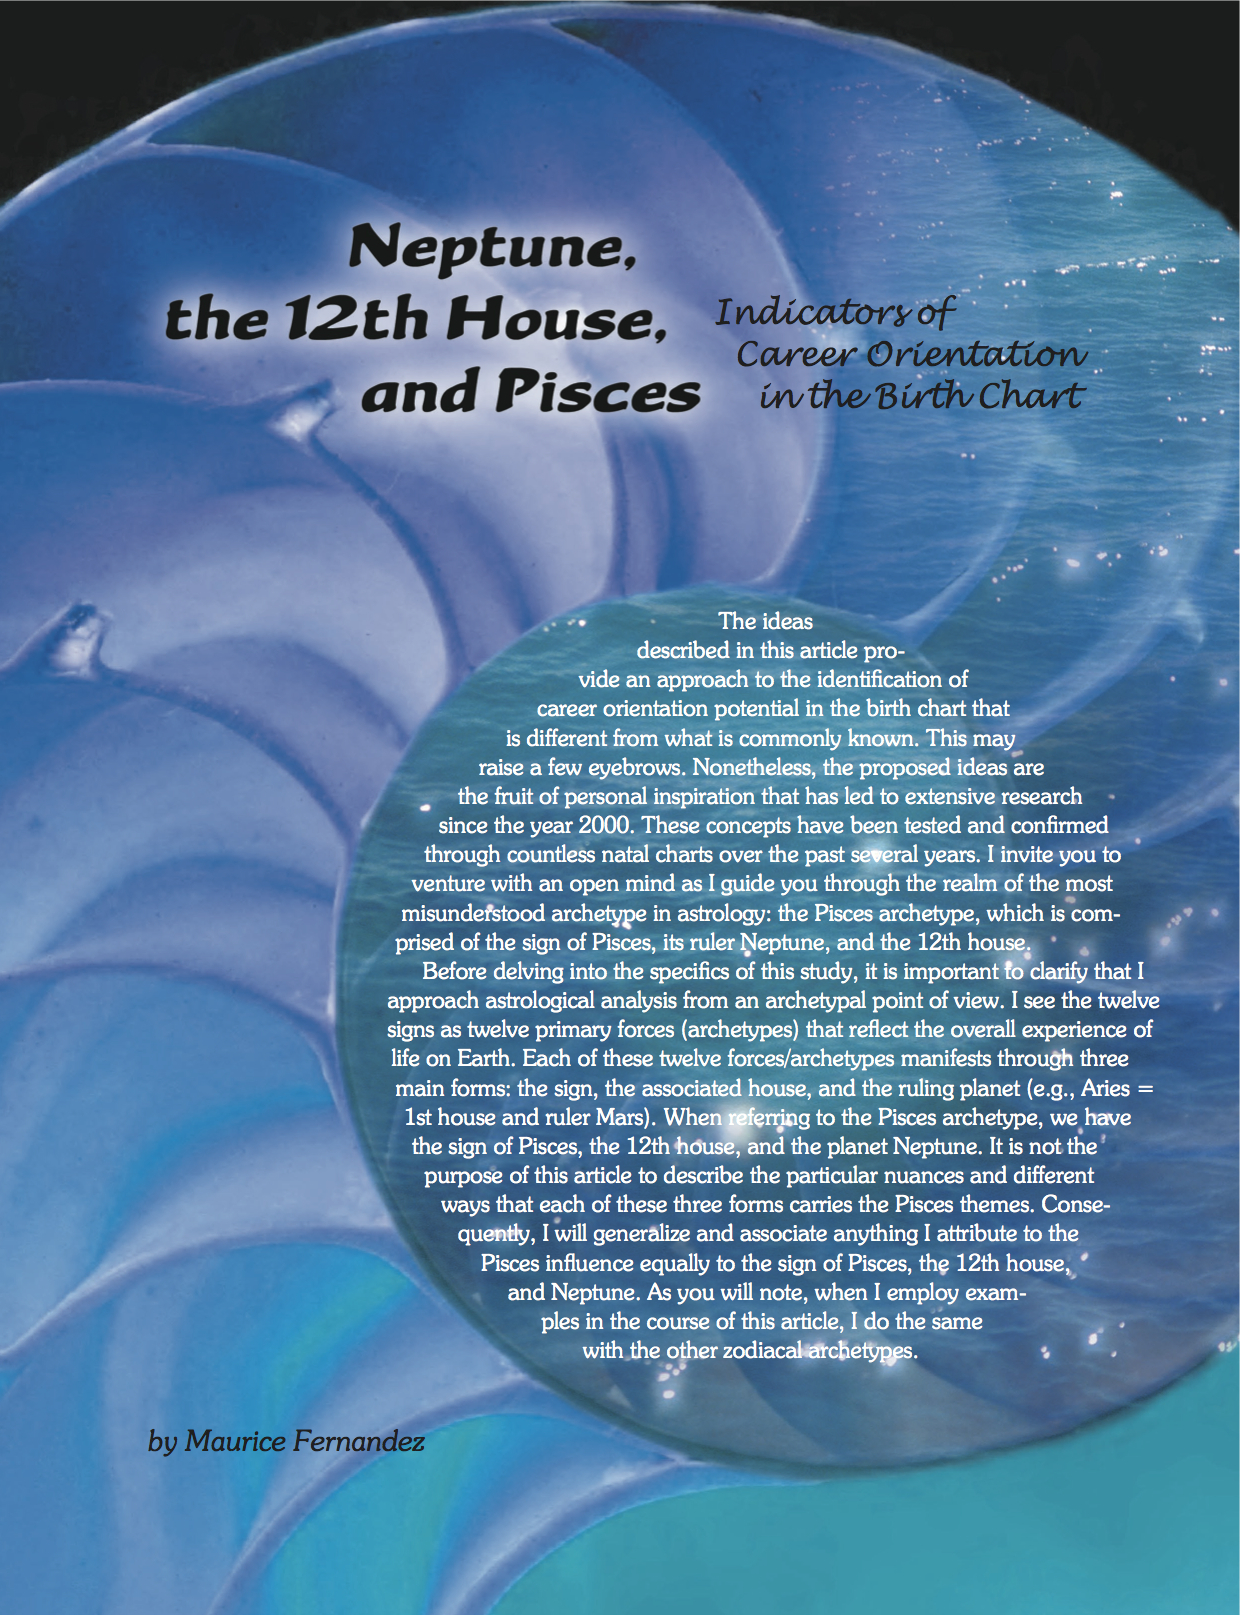 Maurice fernandez astrology and the evolution of the pisces archetype reflects how a person can tap into publiccollective consciousness and its needs the 12th house content together with neptune and nvjuhfo Image collections